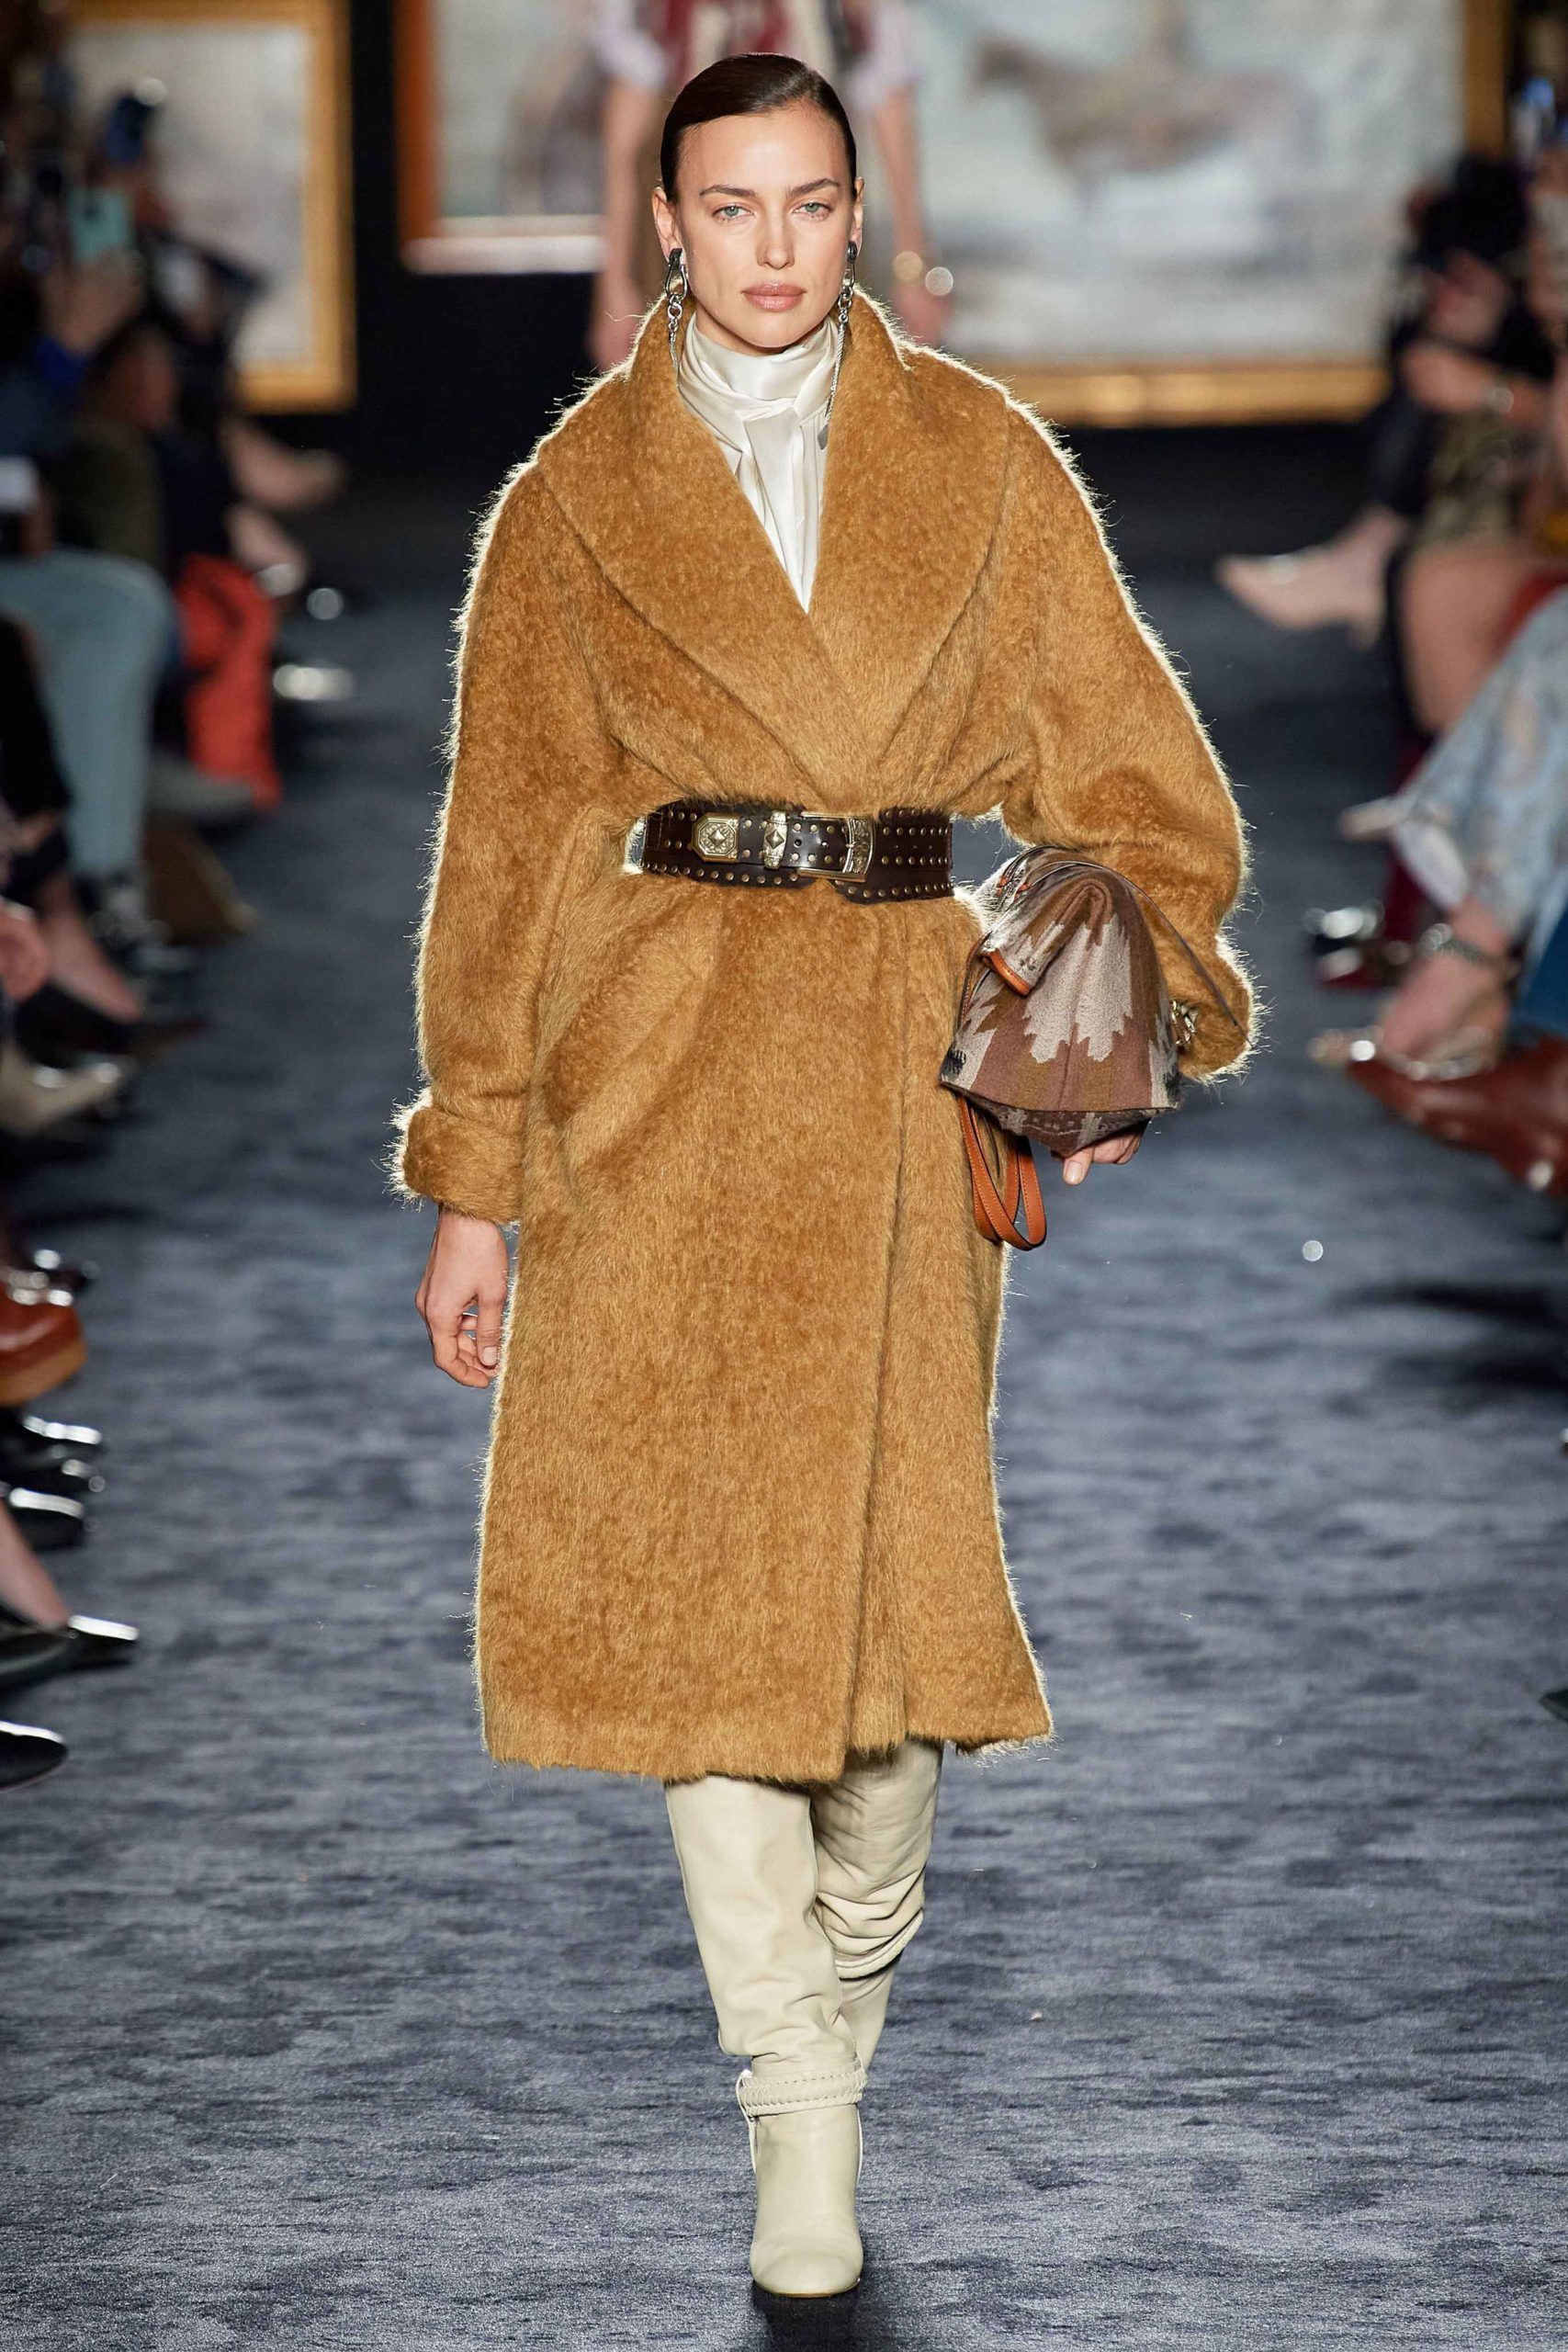 Etro Fall 2020 trends runway report Ready To Wear Vogue shaggy